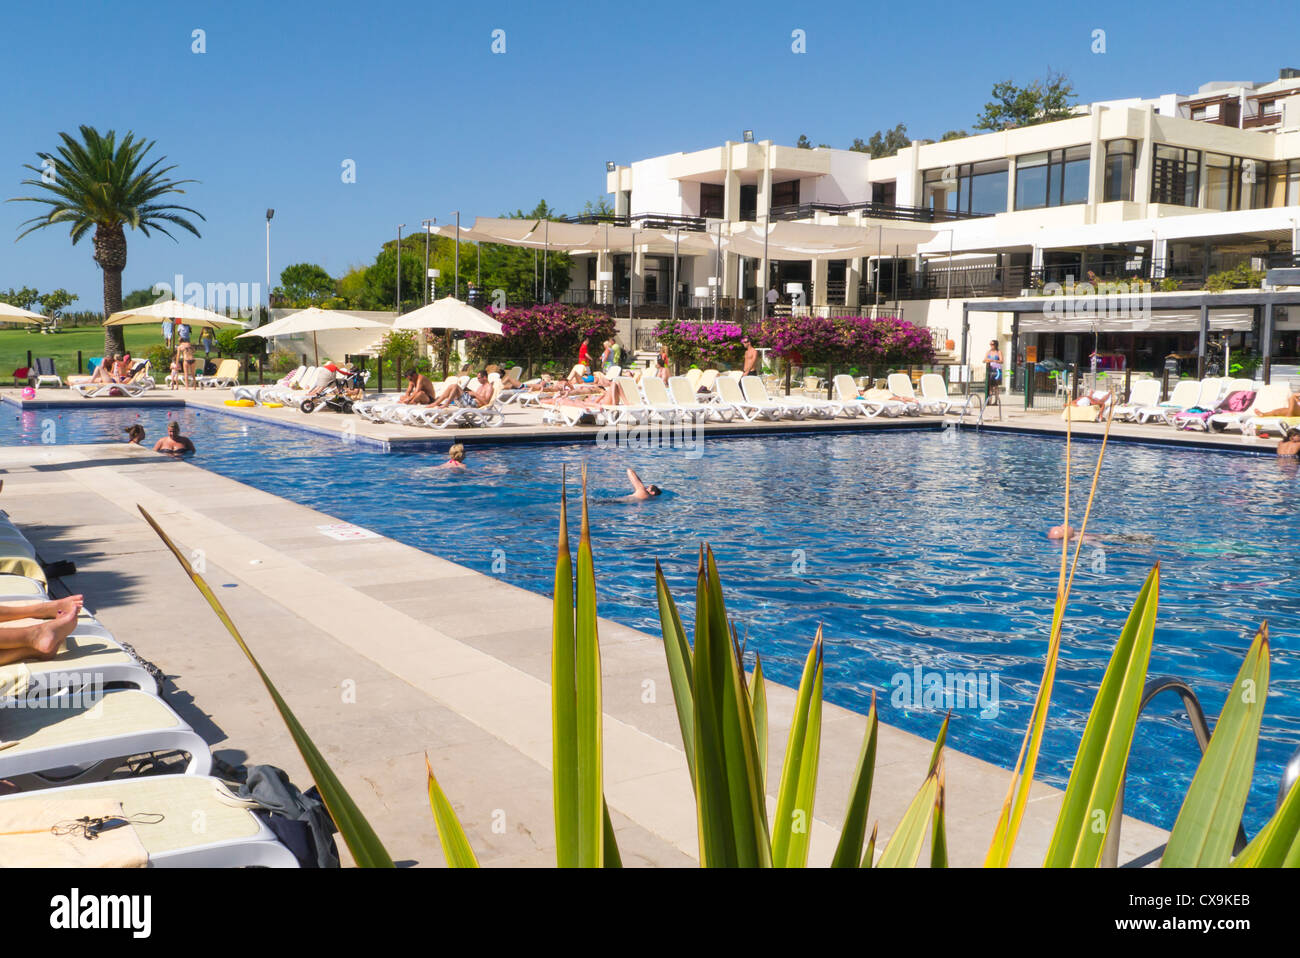 Portugal , Algarve , Club Med , da Balaia , swimming pool surrounded by sun loungers sunbathers & restaurant - Stock Image